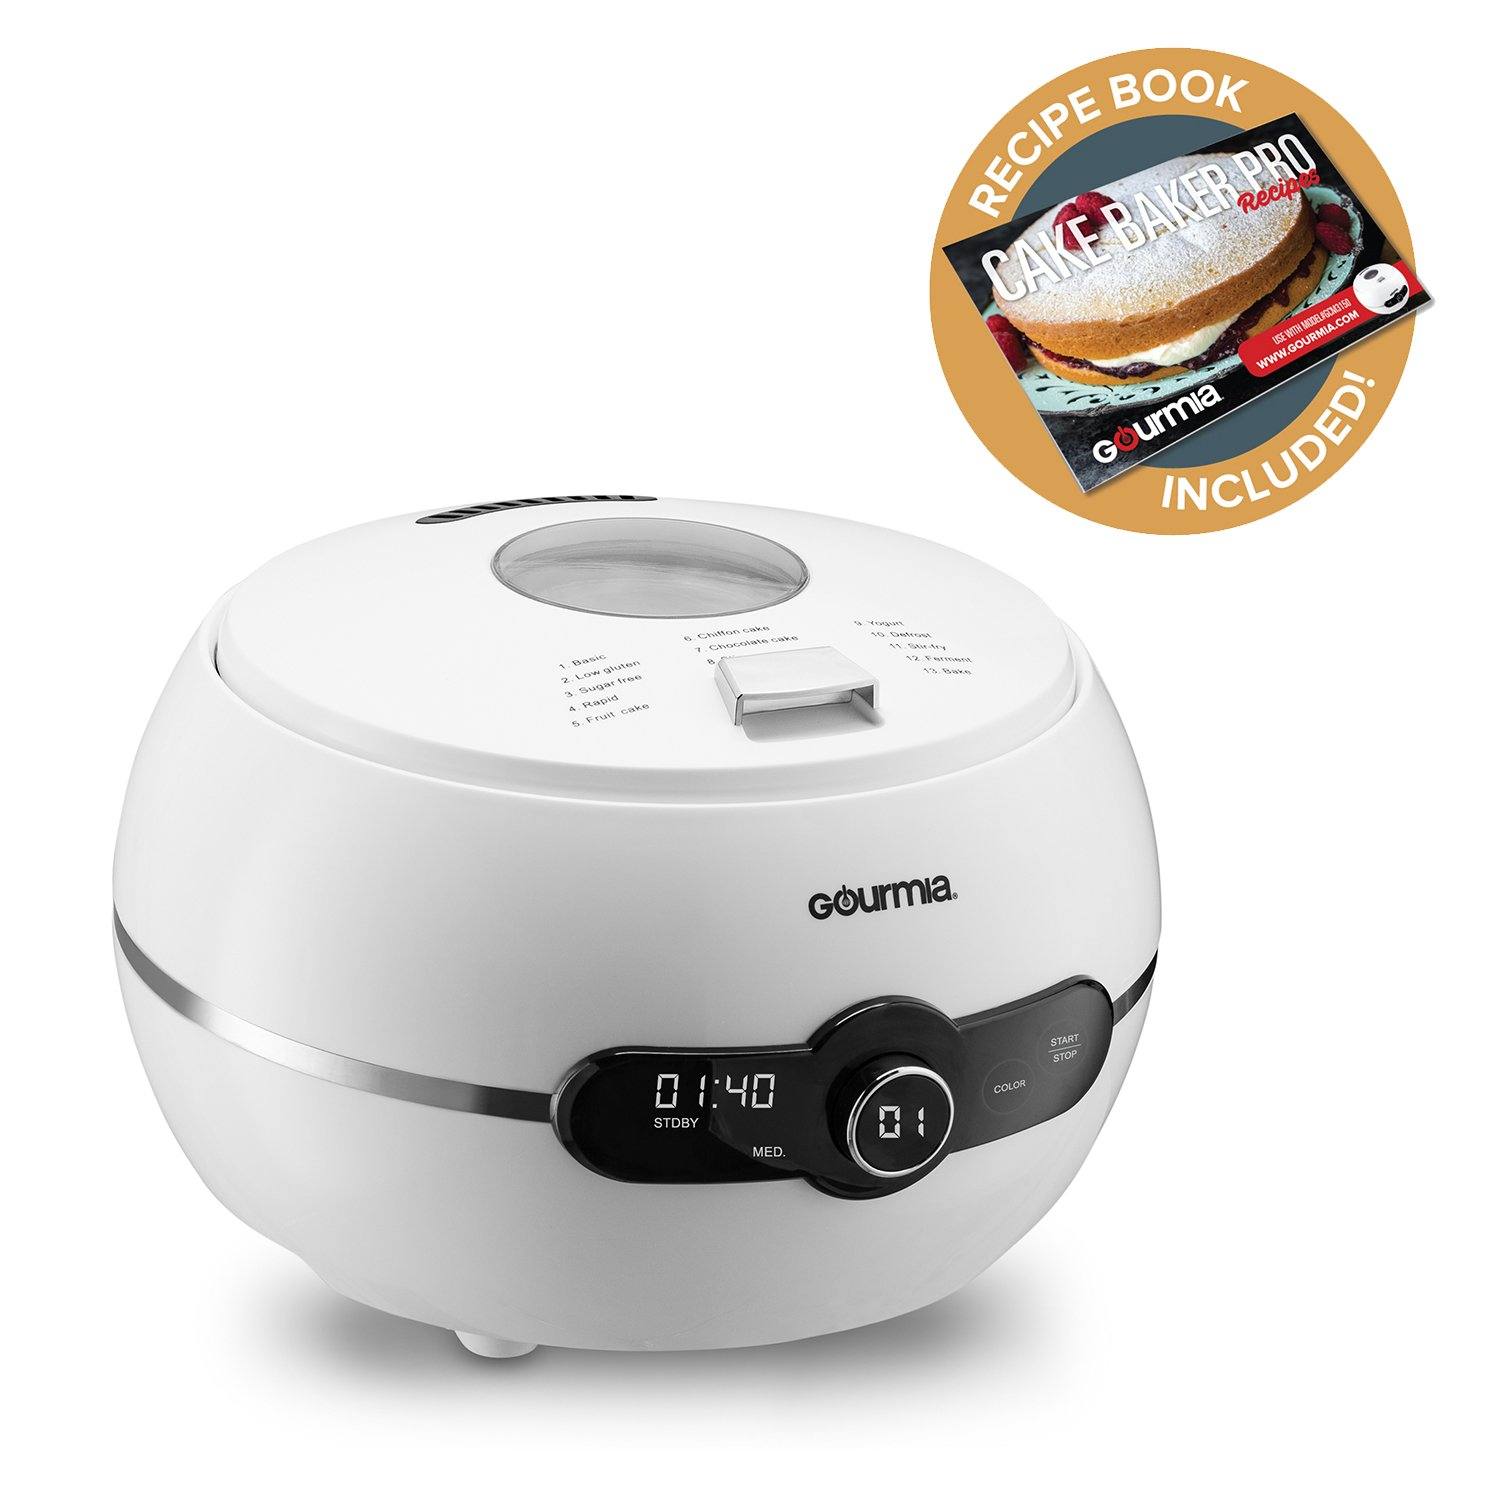 Gourmia - GCM3150 - One touch automatic cake and bake mixer Pro - 2LB - Digital LED Control Panel With 13 Baking Functions - Removable Bundt Baking Pan & Lid, Bonus Accessories & Free Recipe Book by Gourmia